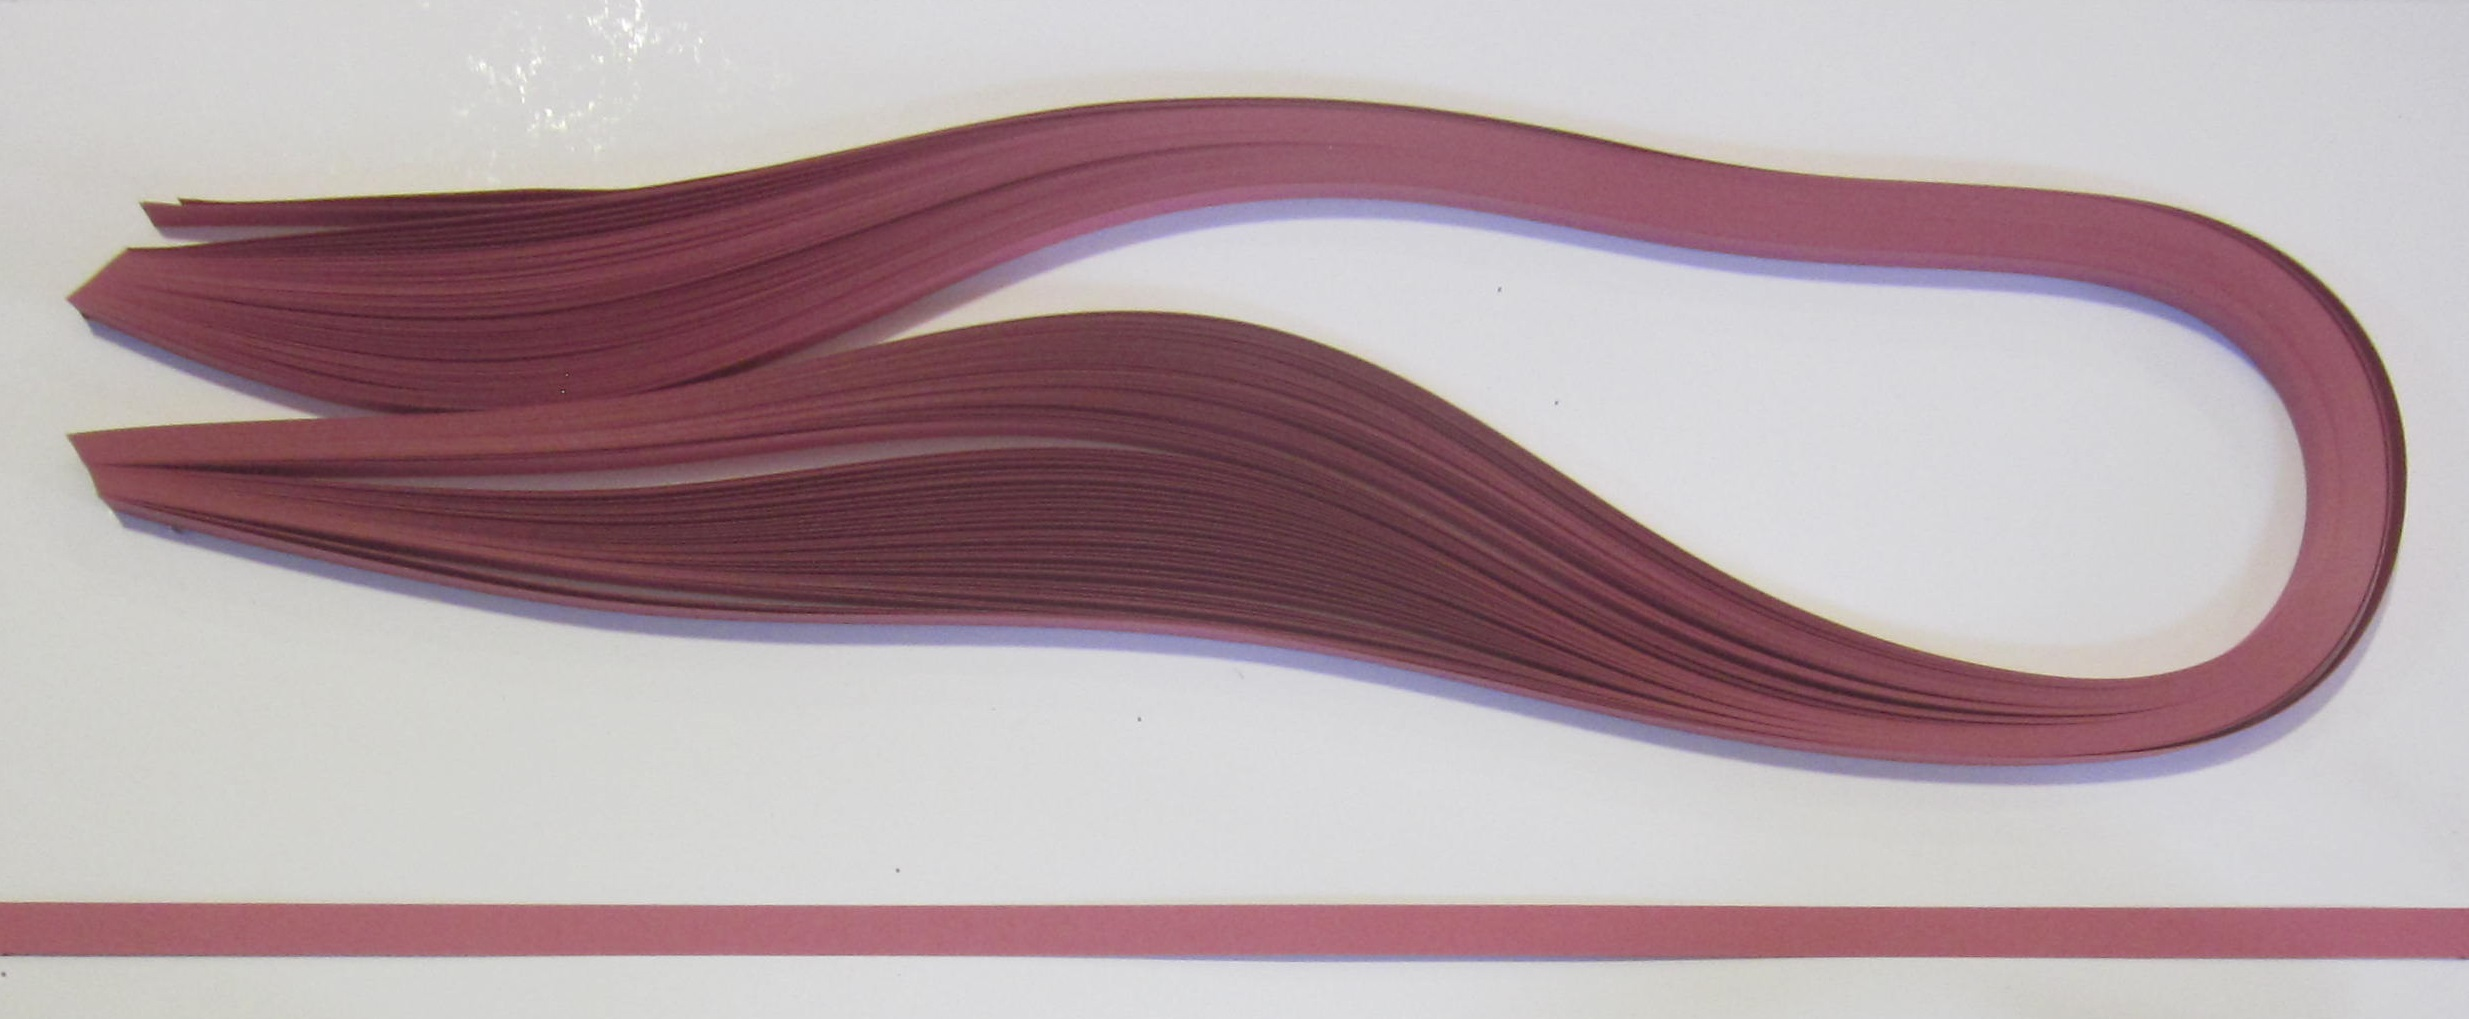 PAPEL QUILLING 321, 9MM. PURPURA